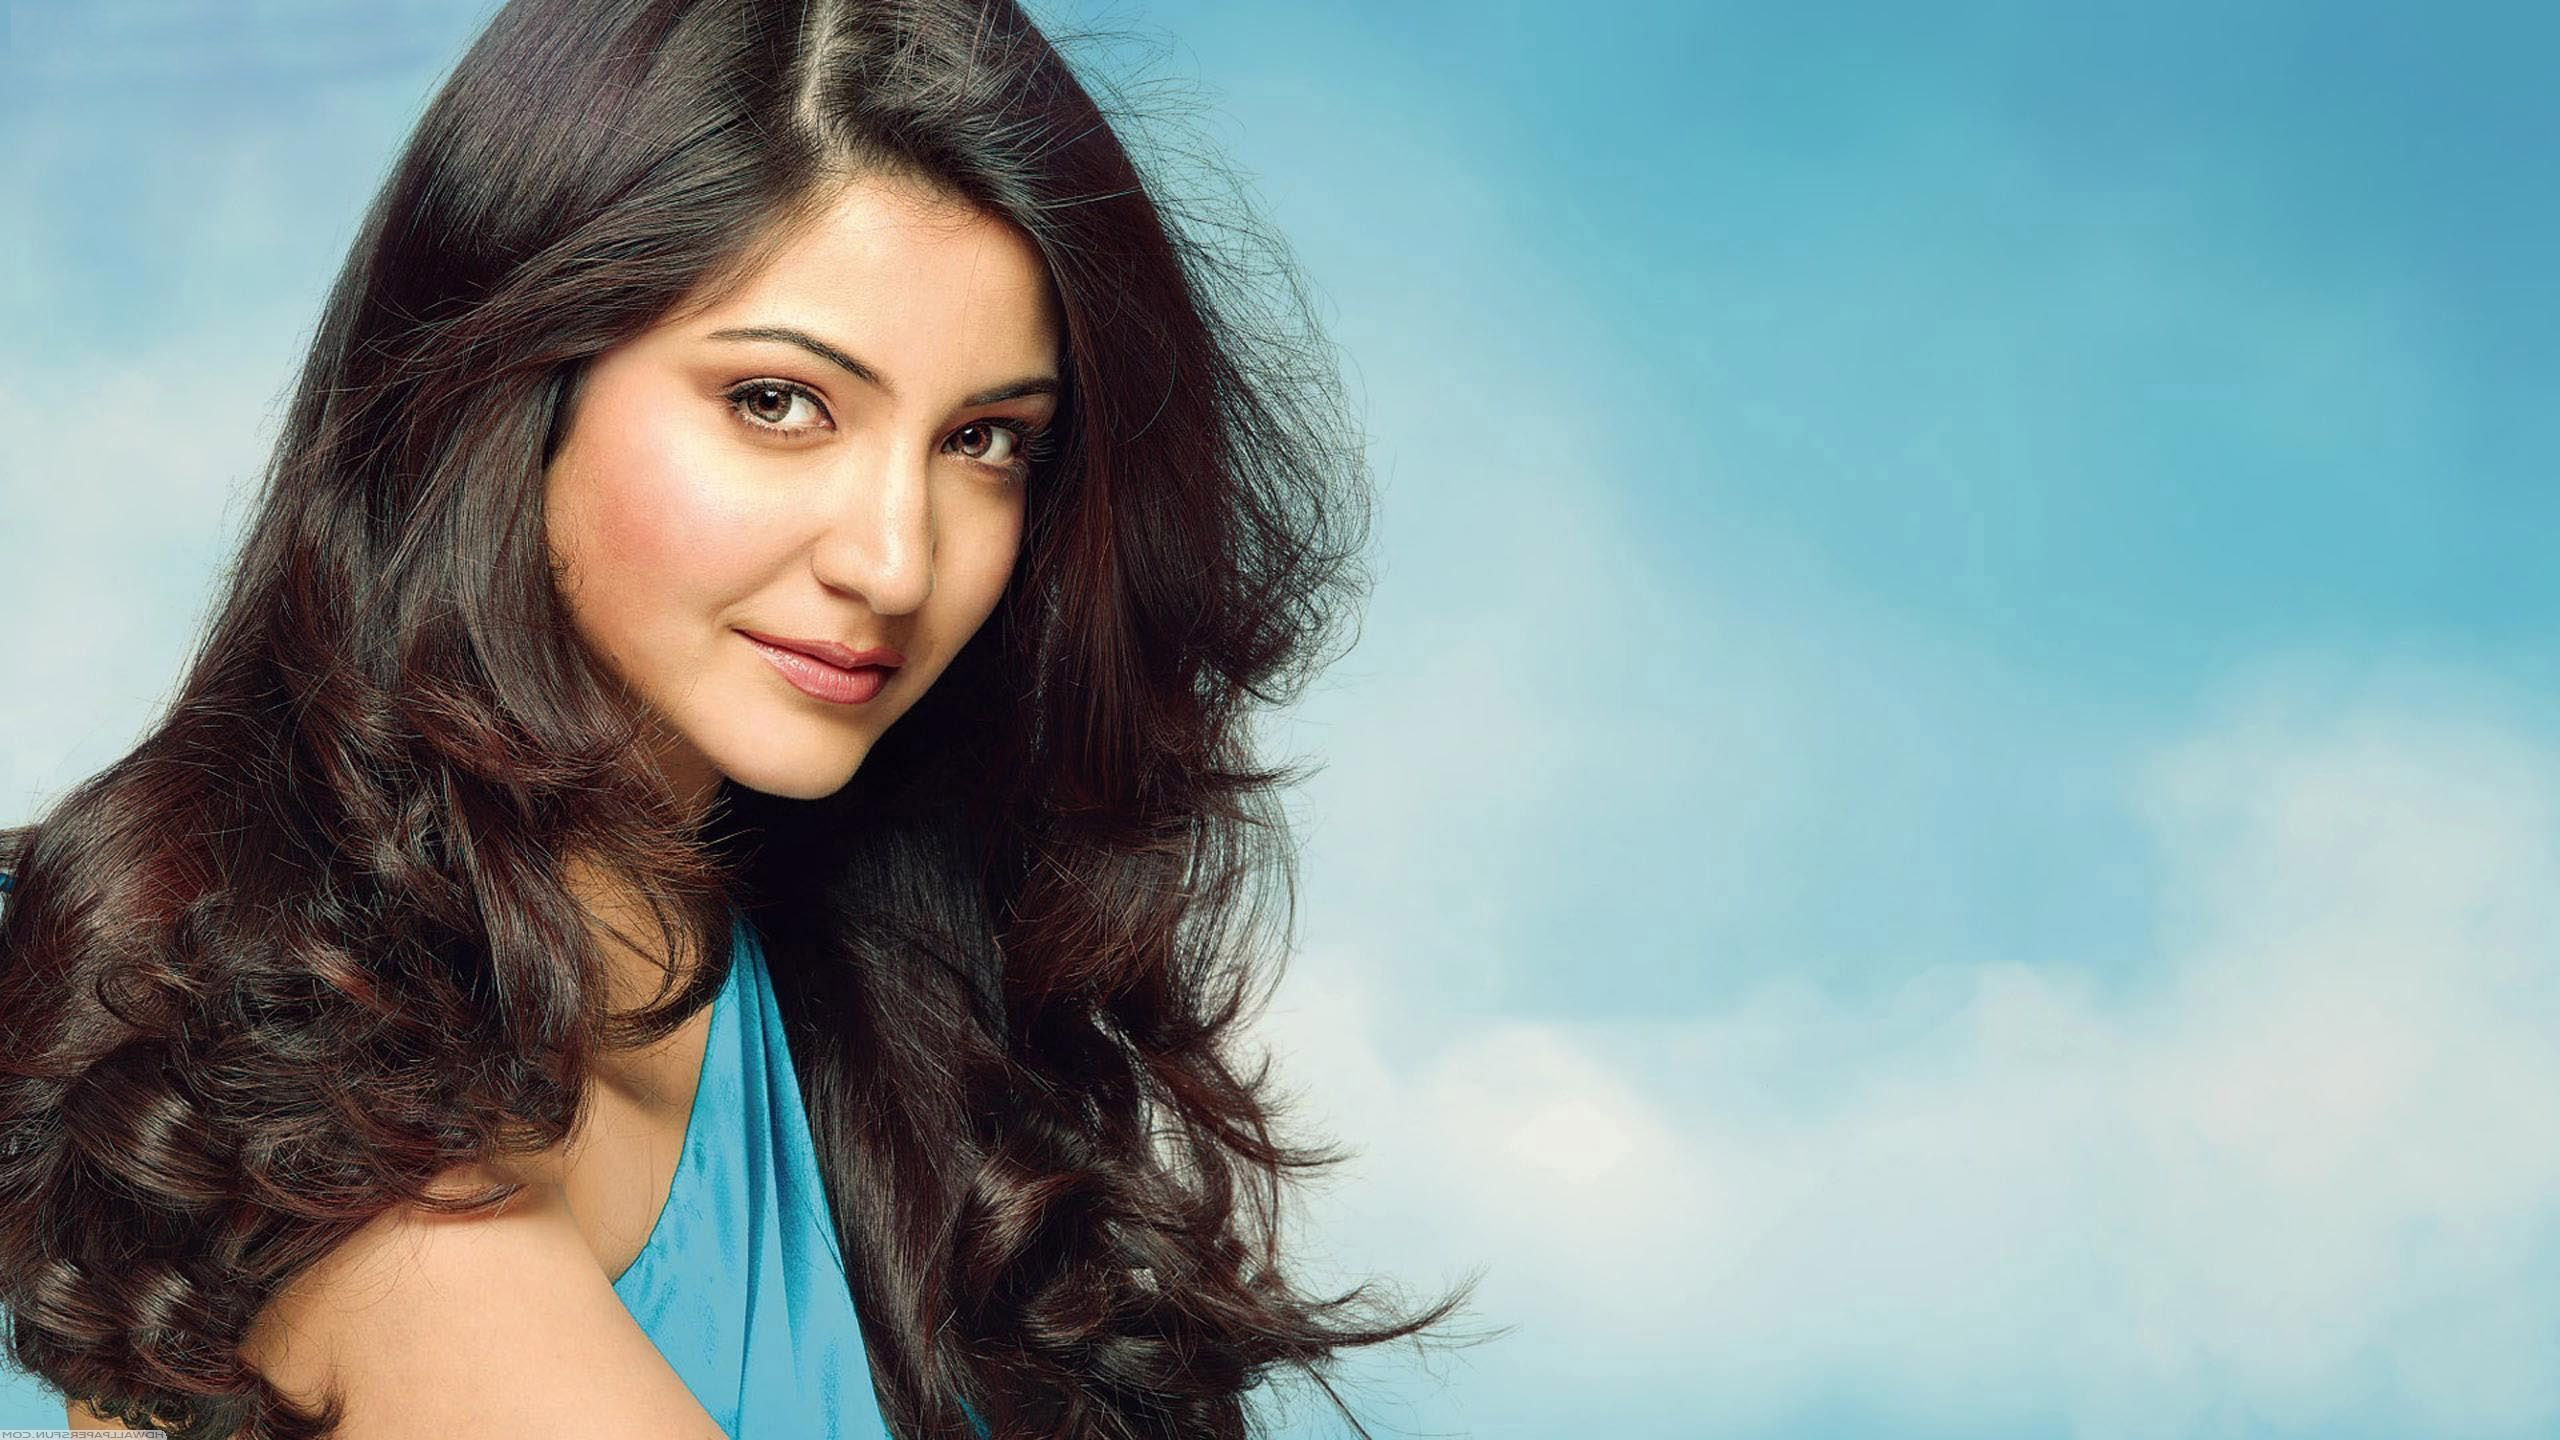 anushka sharma hd wallpapers in jpg format for free download